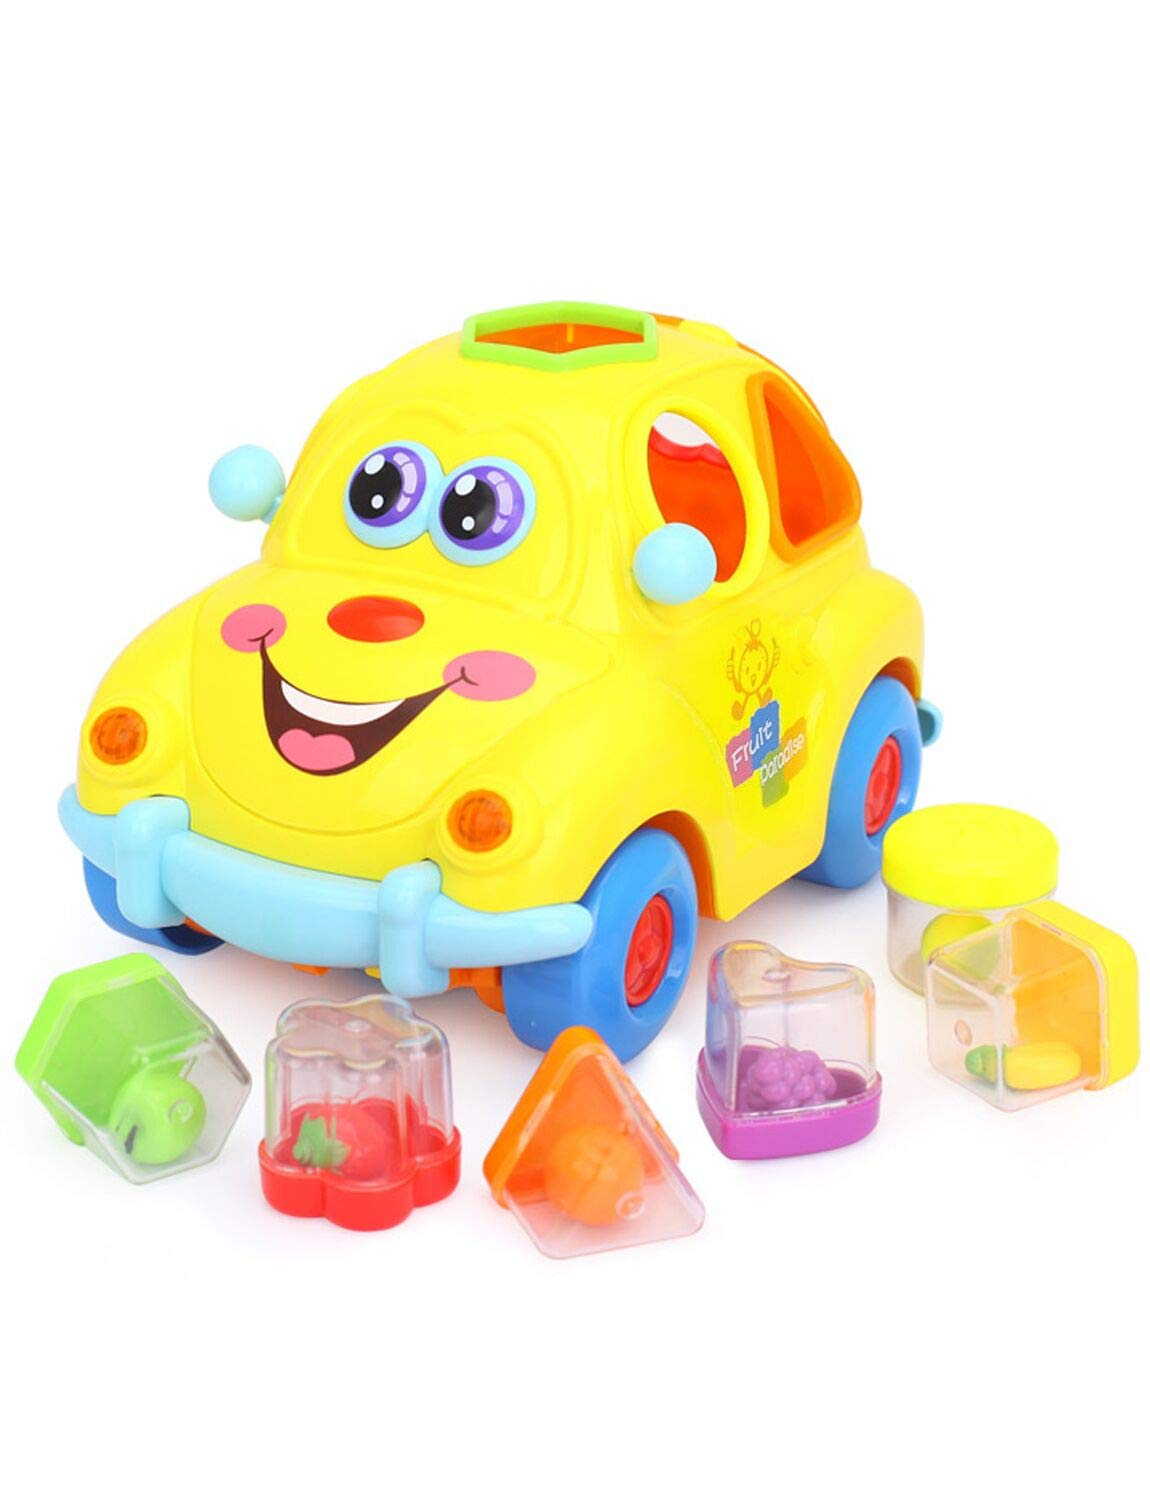 VIVIDEA Lovely Cartoon Intelligent Fruit Car Toy Learning Vehicle Plaything Omni-Direction Moving with Colorful Fruit Blocks, Music and Light for Kids Children Girls & Boys 18+ Months